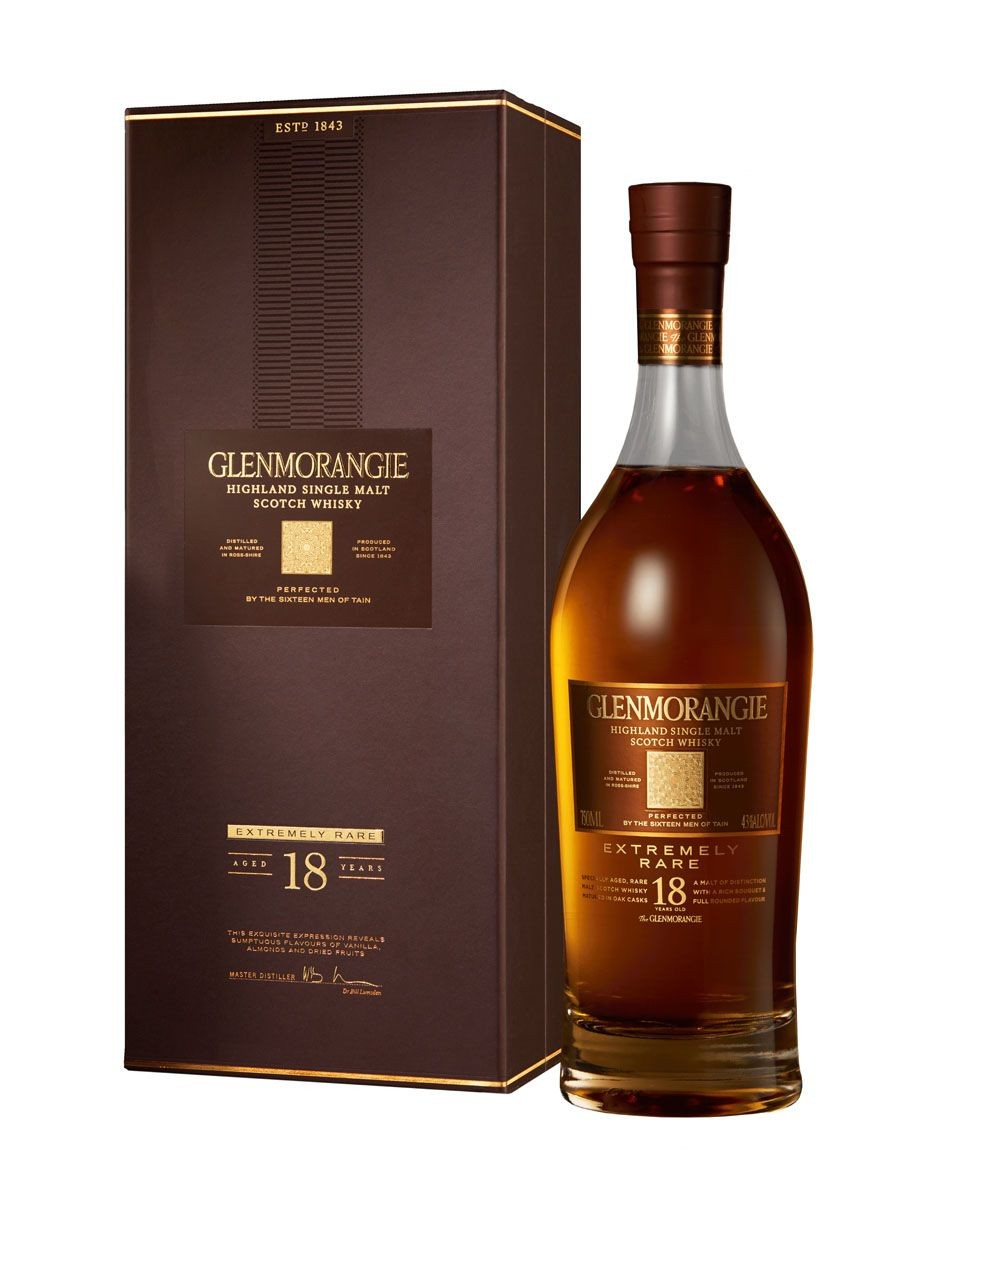 Glenmorangie Extremely Rare 18 Years Old Scotch Whisky